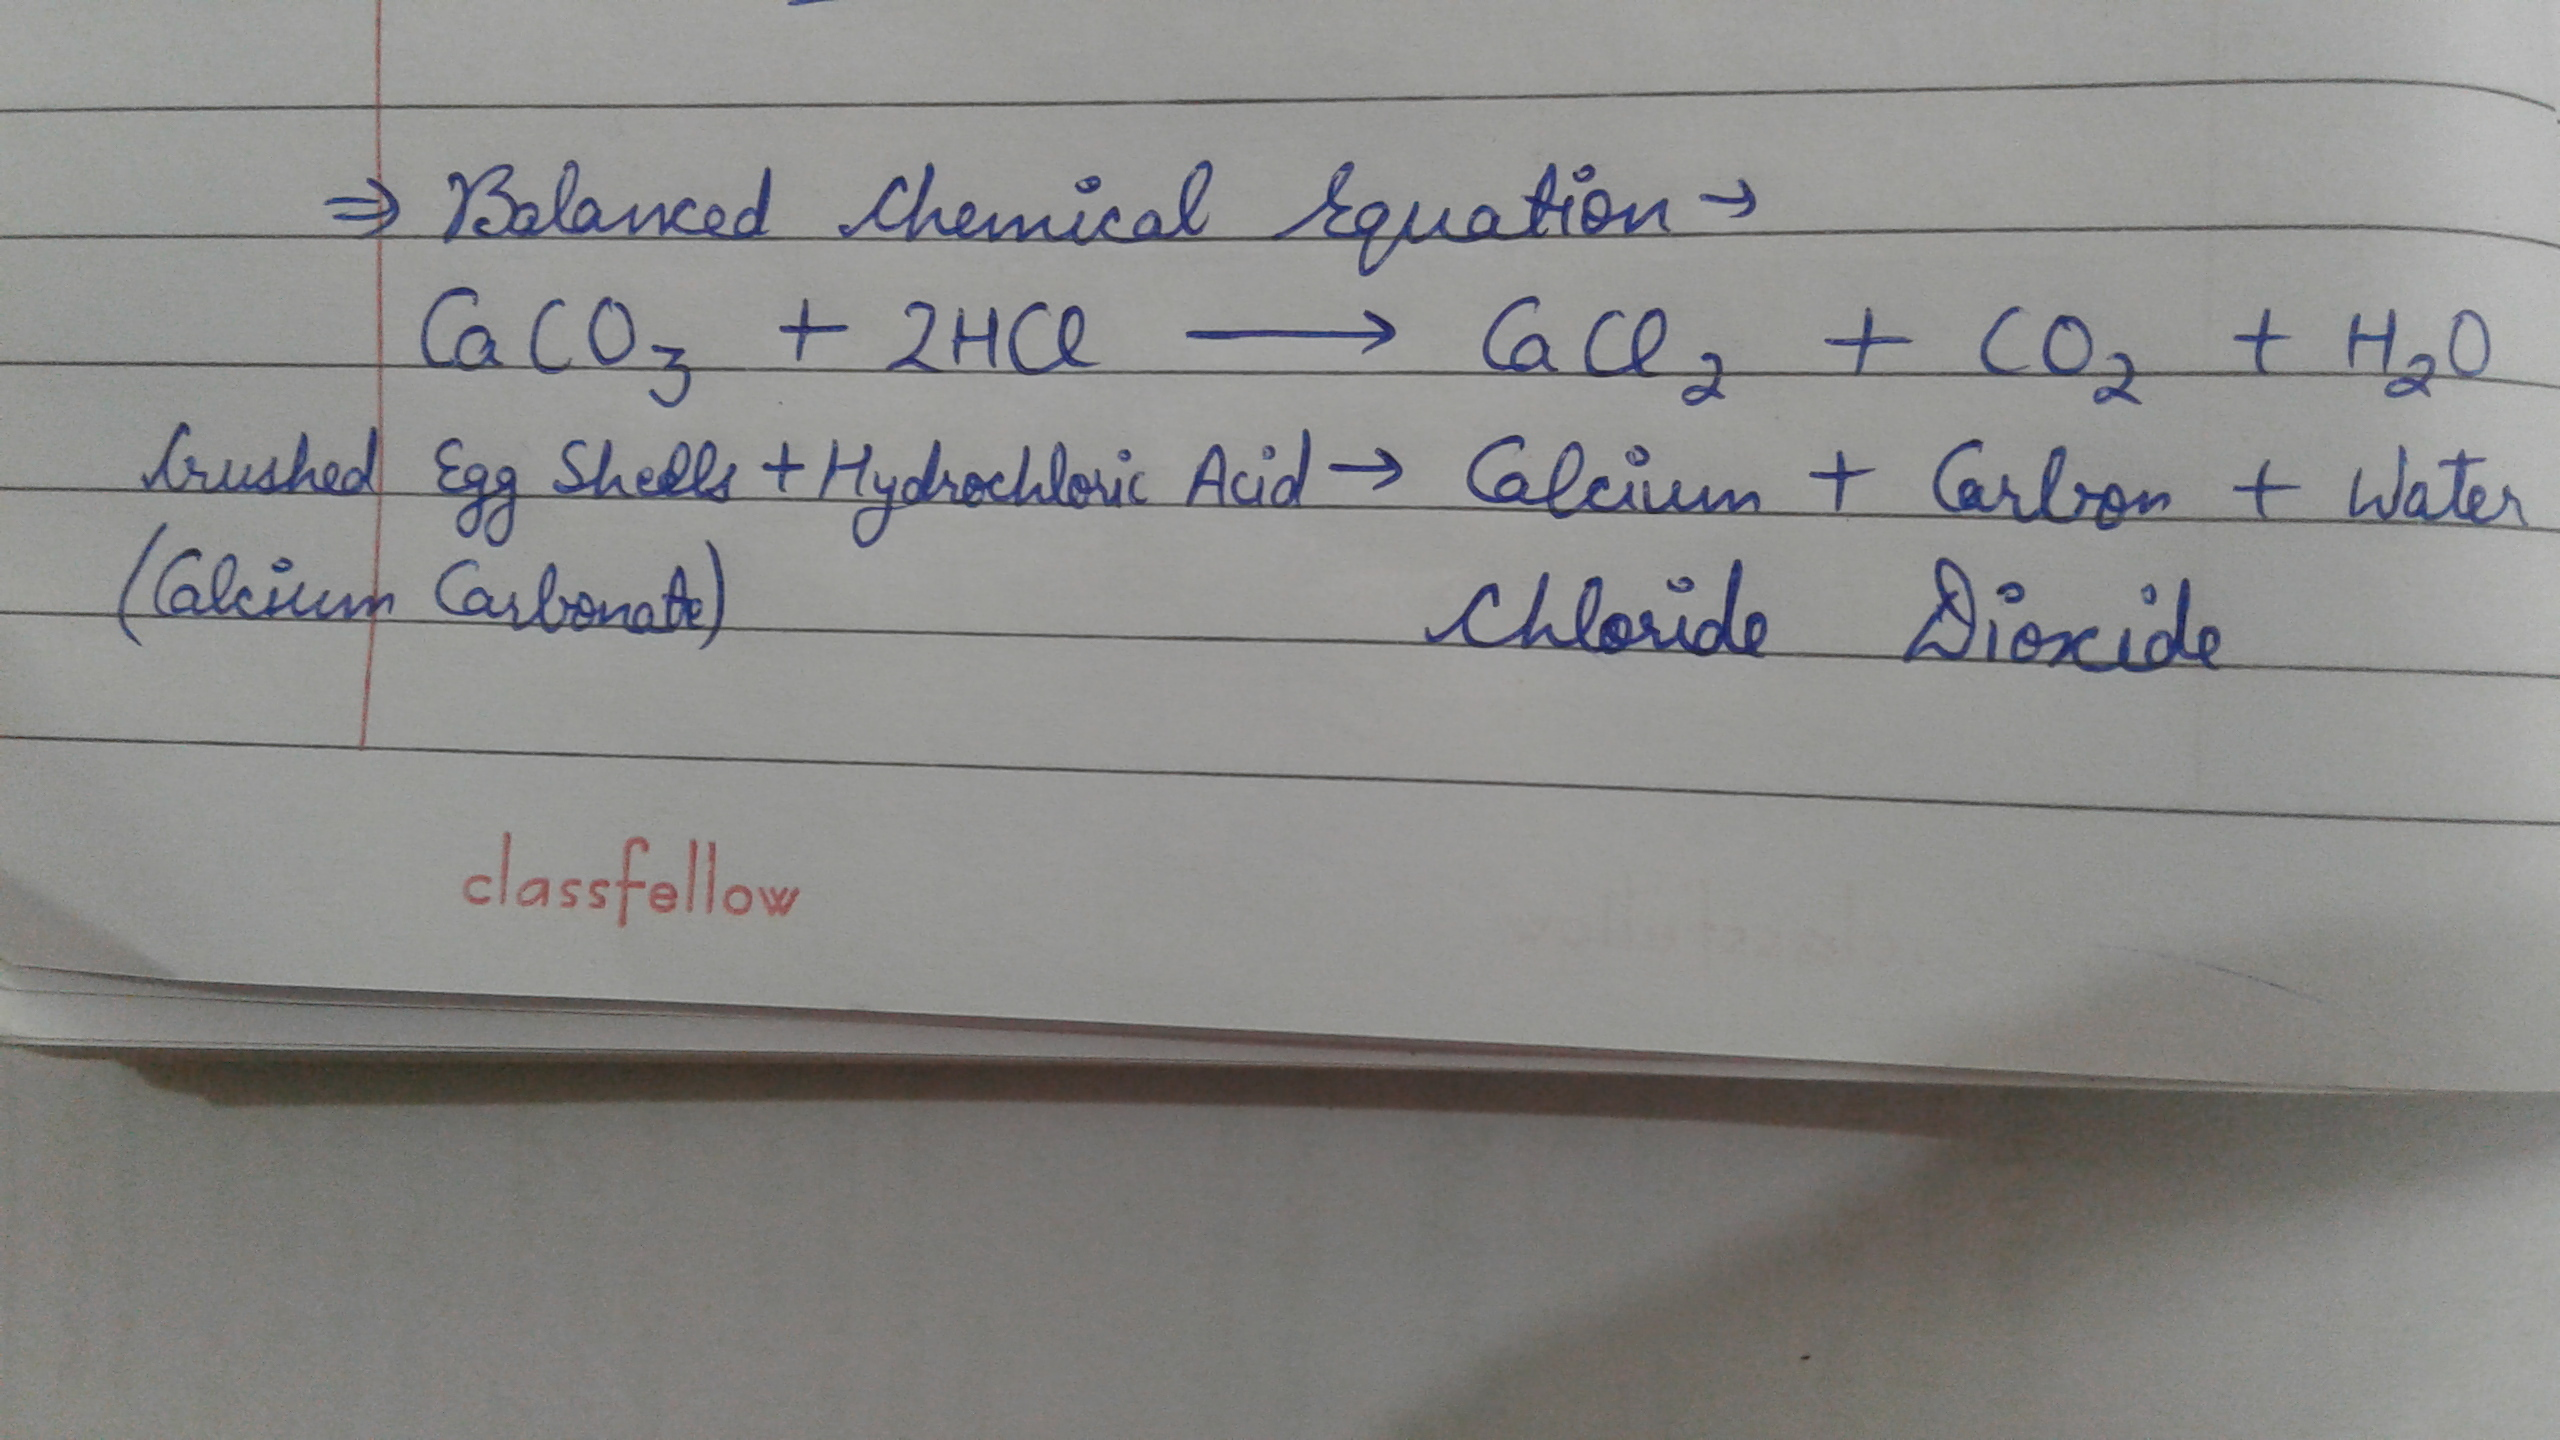 What Happens When Dulite Hcl Reacts With Crushed Egg Shell Give